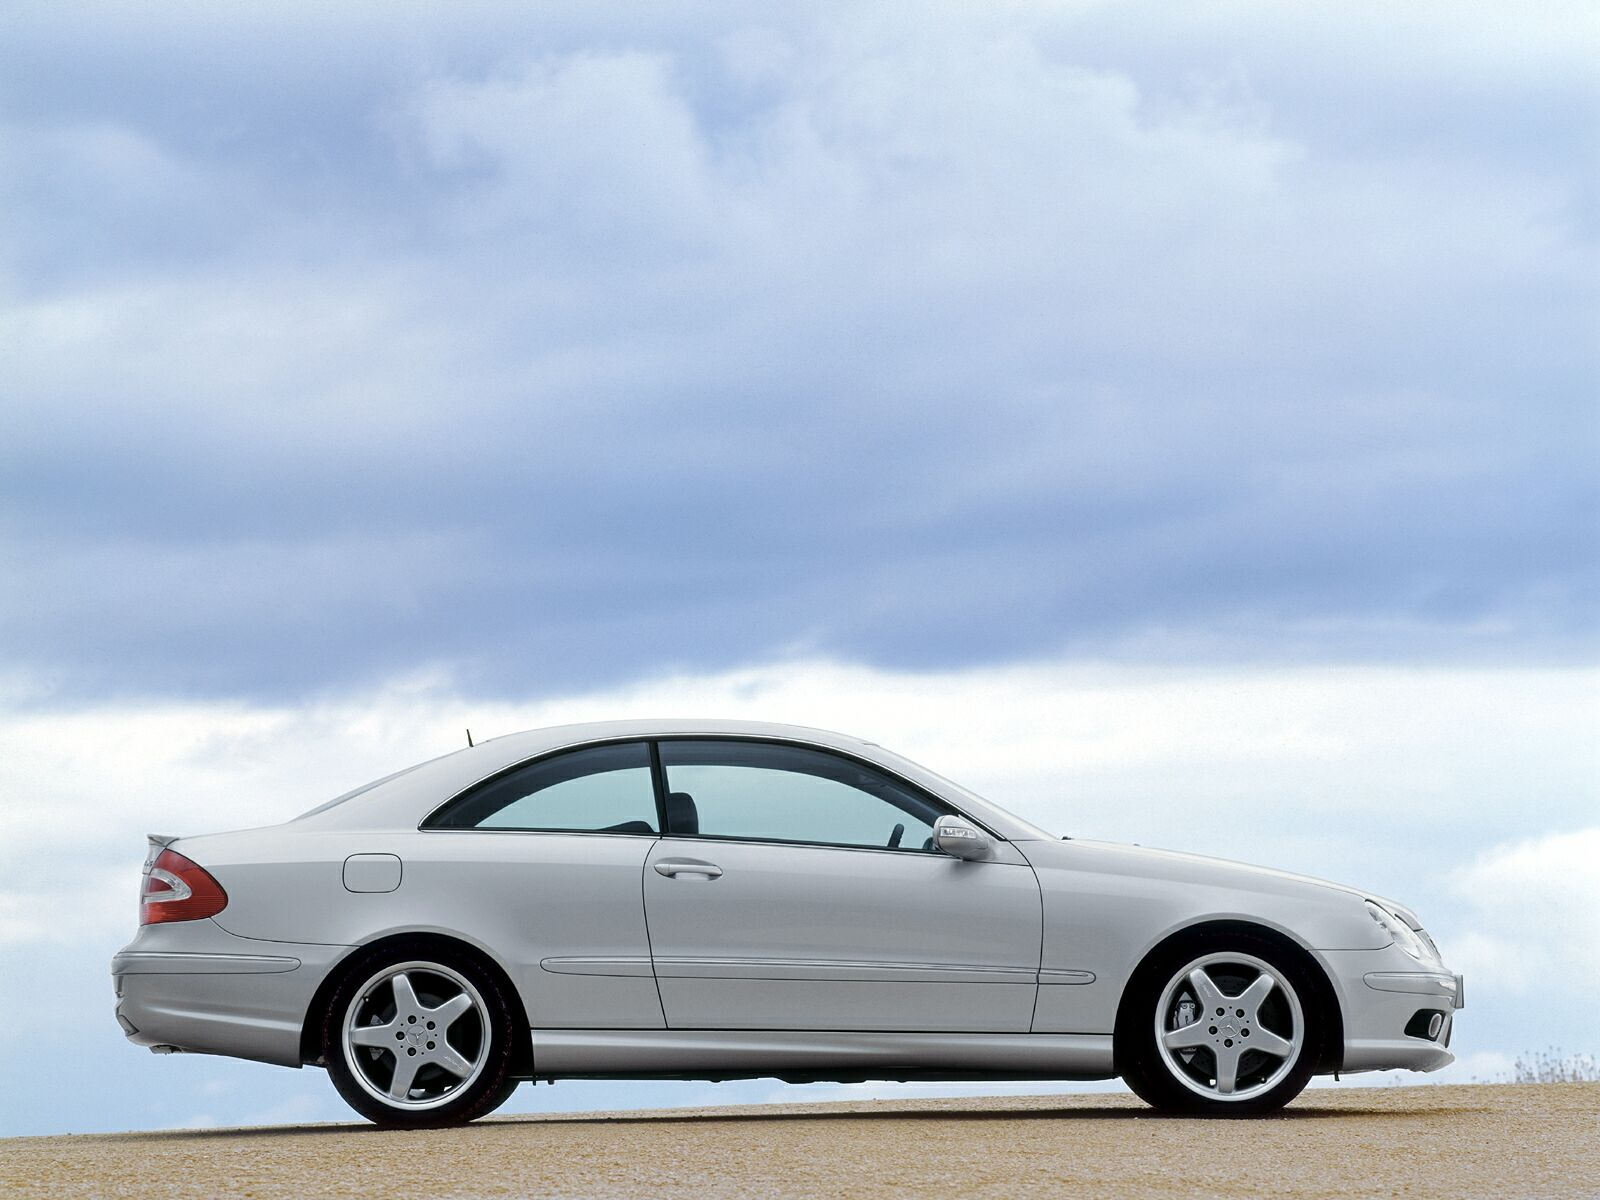 Mercedes Benz CLK 55 6